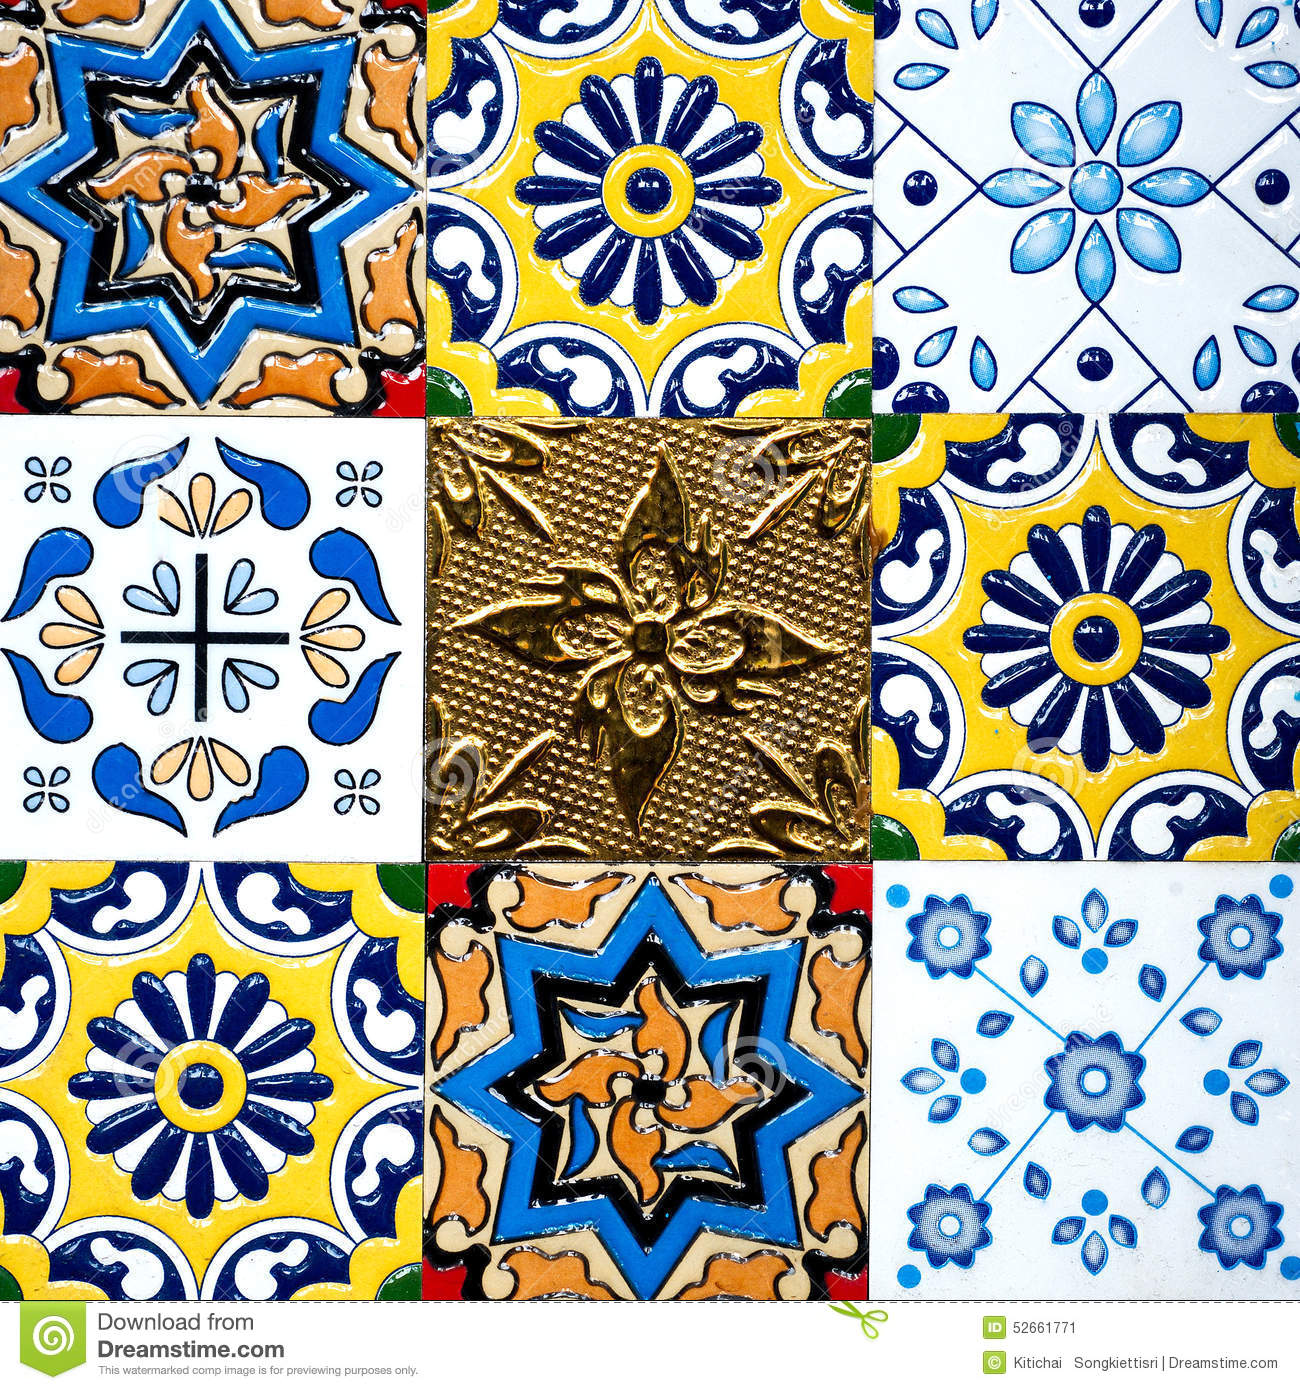 Beautiful old wall ceramic tiles patterns handcraft from thailand beautiful old wall ceramic tiles patterns handcraft from thailand public building nobody dailygadgetfo Images